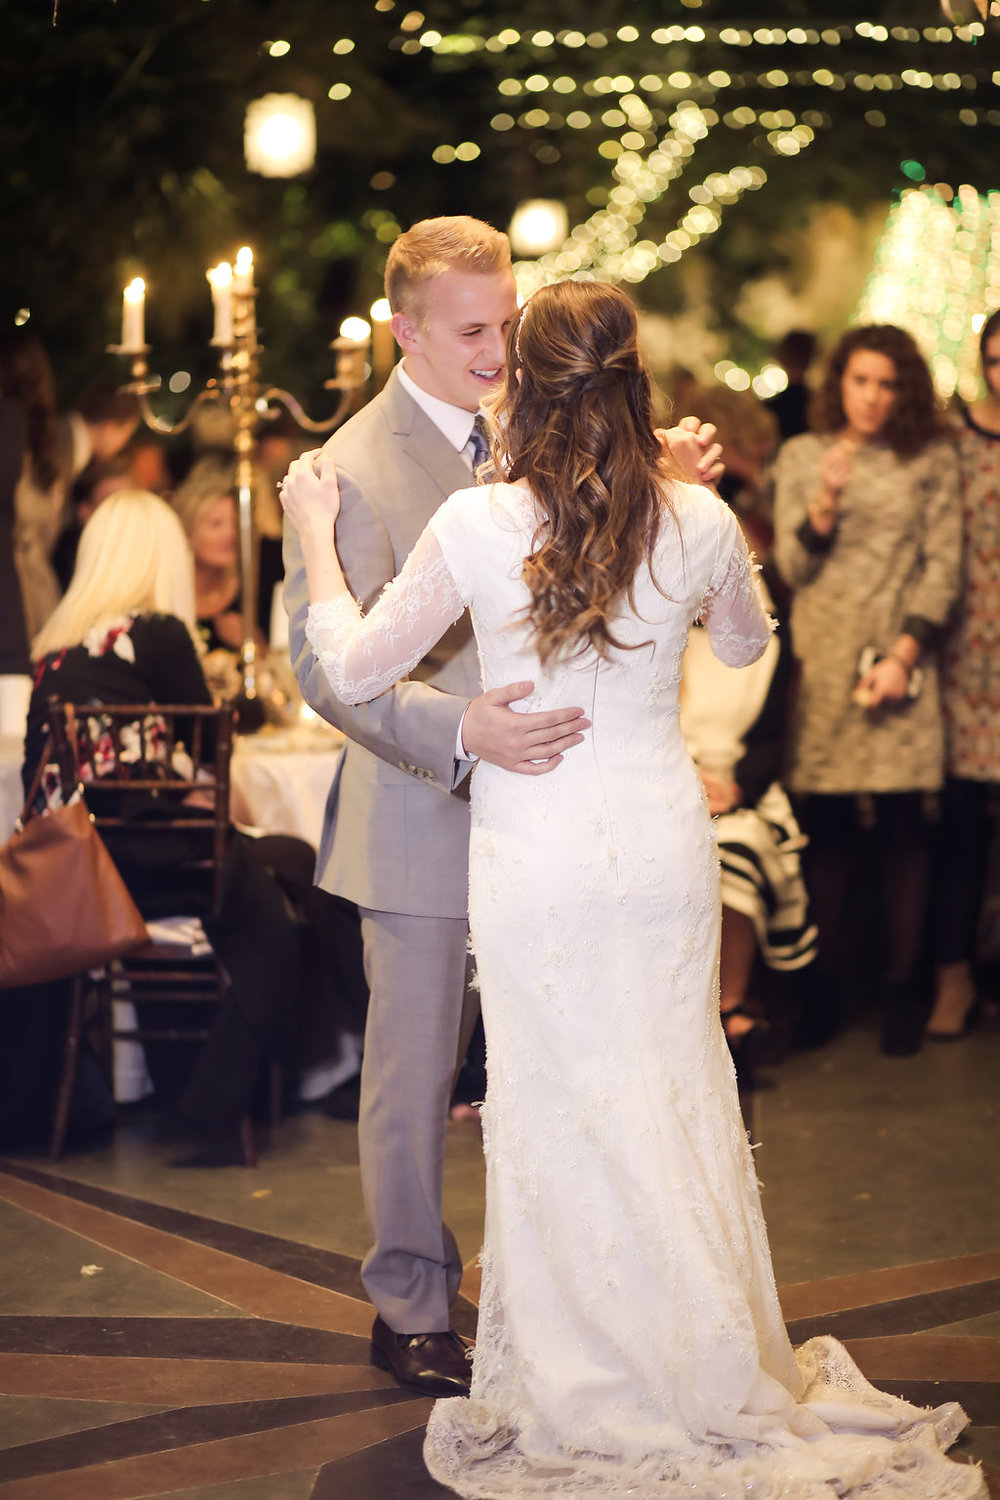 Winter Wedding at La Caille | Romantic Winter Wedding | La Caille Wedding | Michelle Leo Events | Utah Event Planner and Designer | Pepper Nix Photography